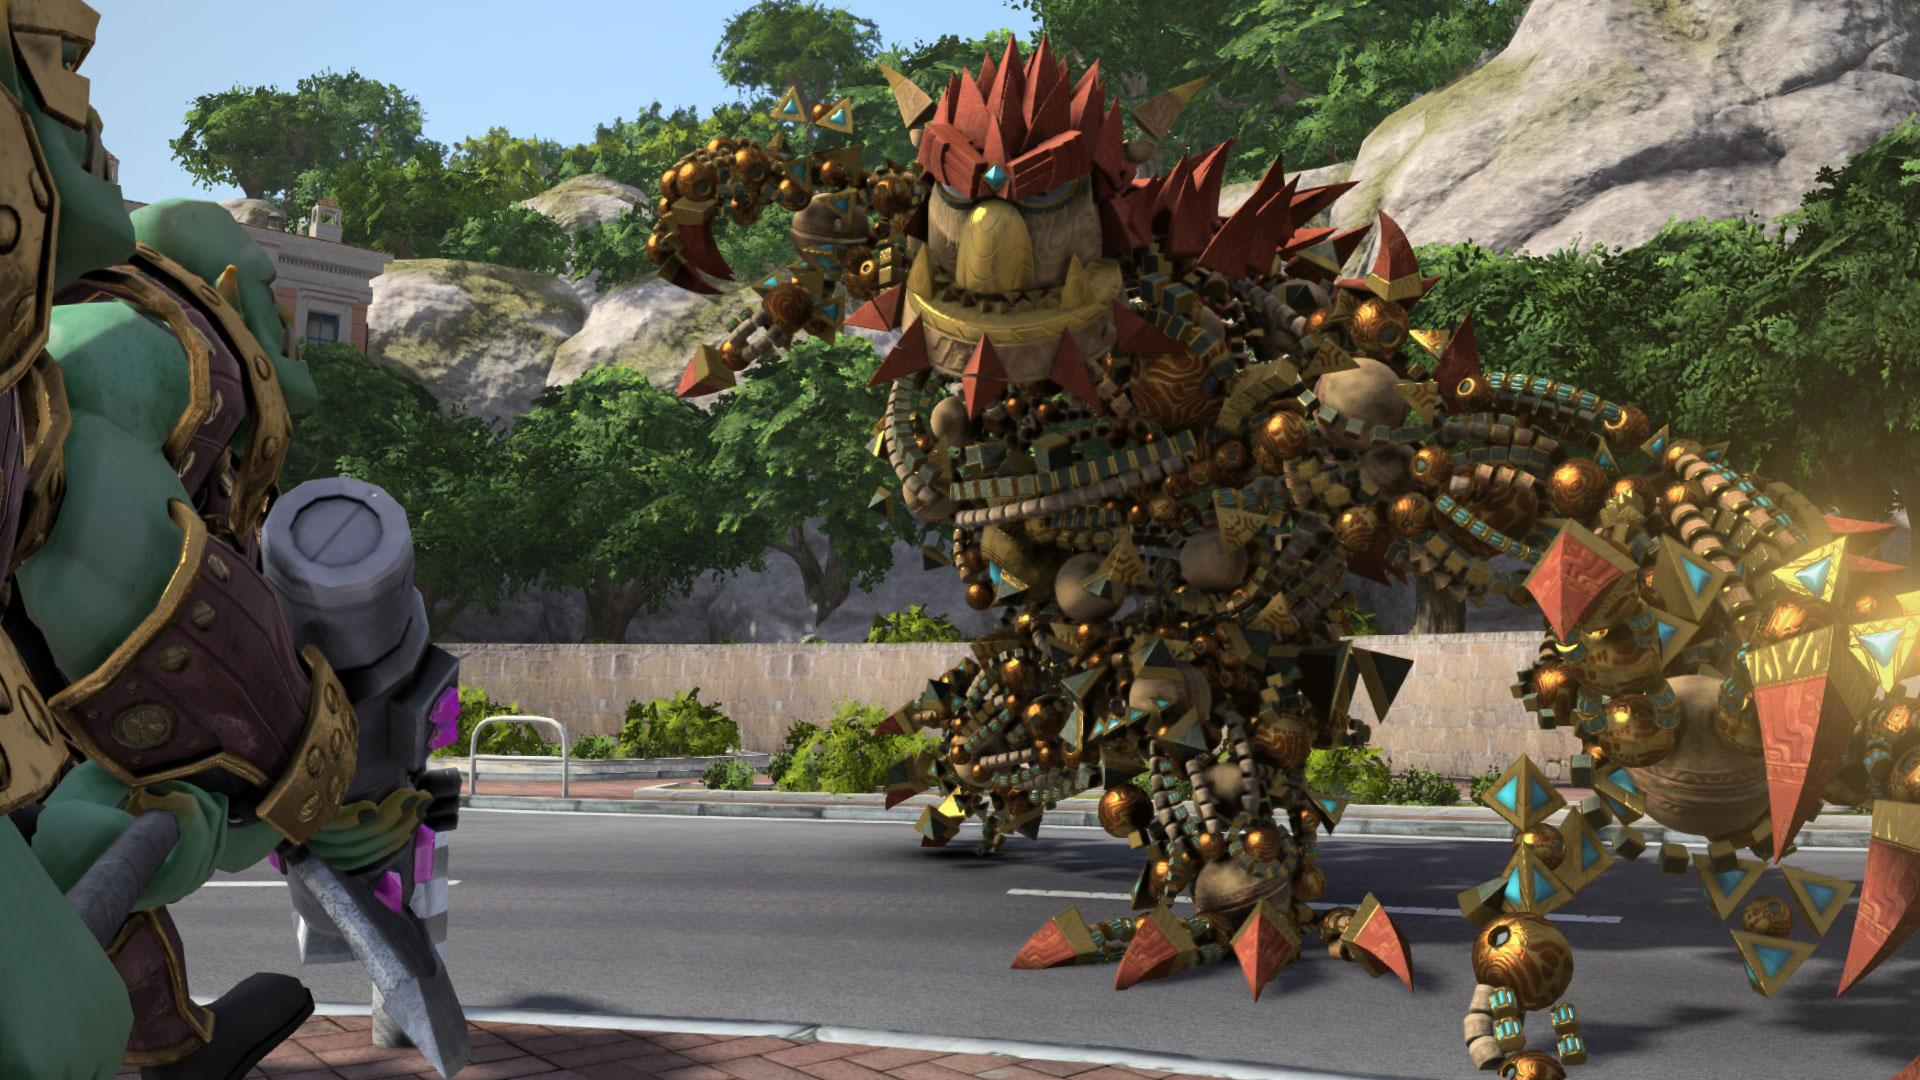 knack-2-is-in-development-for-playstation-4-according-to-developer-profile-500402-2